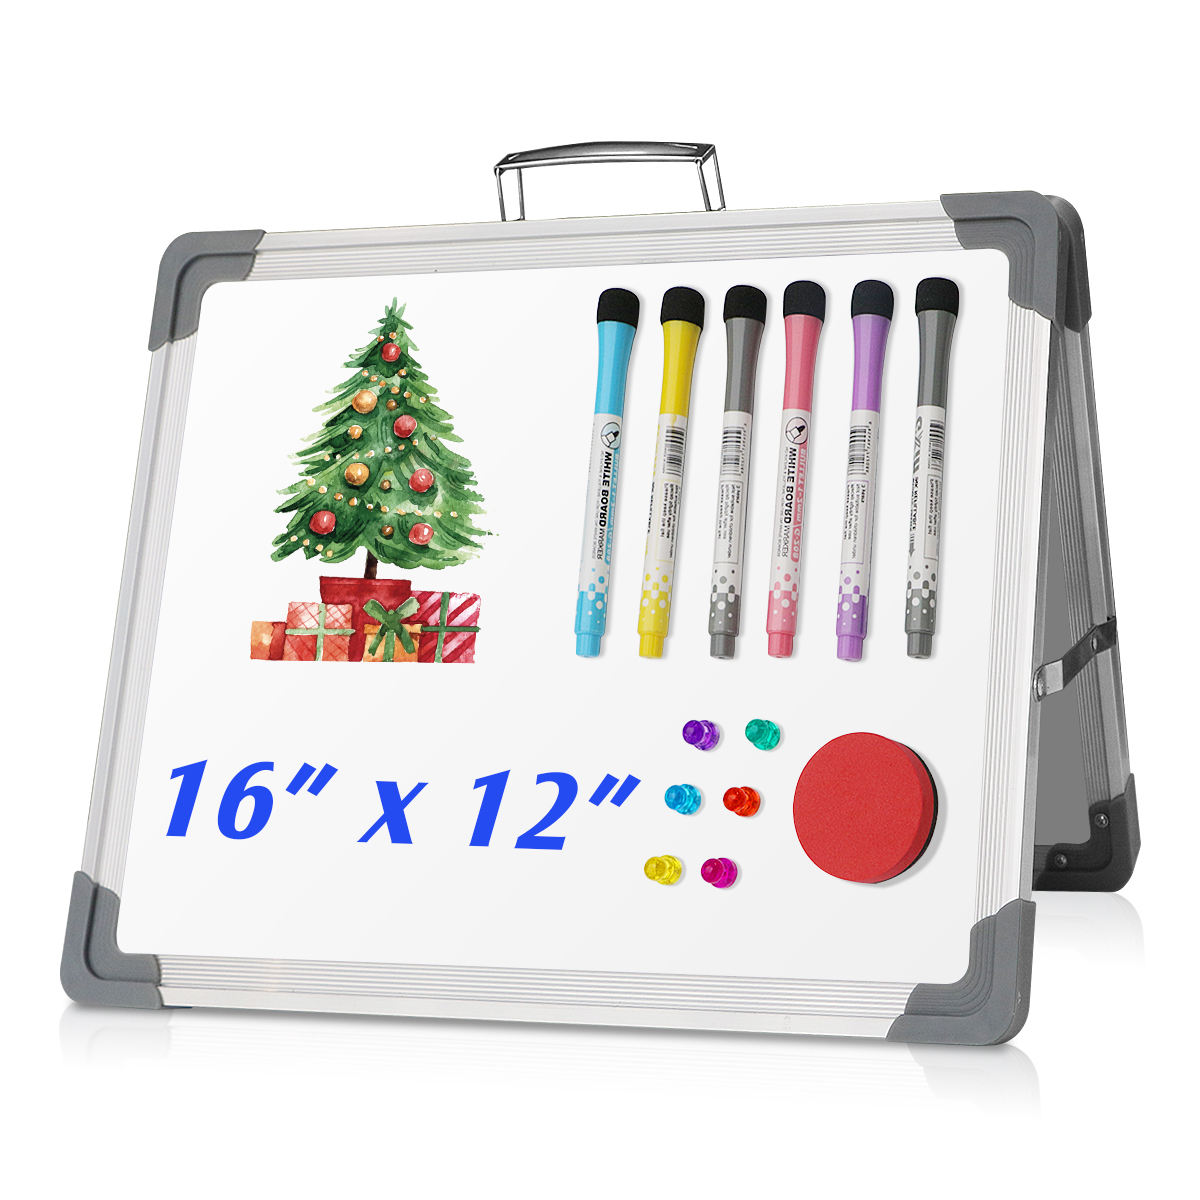 Amazon Hot Sale Desktop Dry Erase Board Whiteboard for Kids Office Home Double Side Magnetic White board